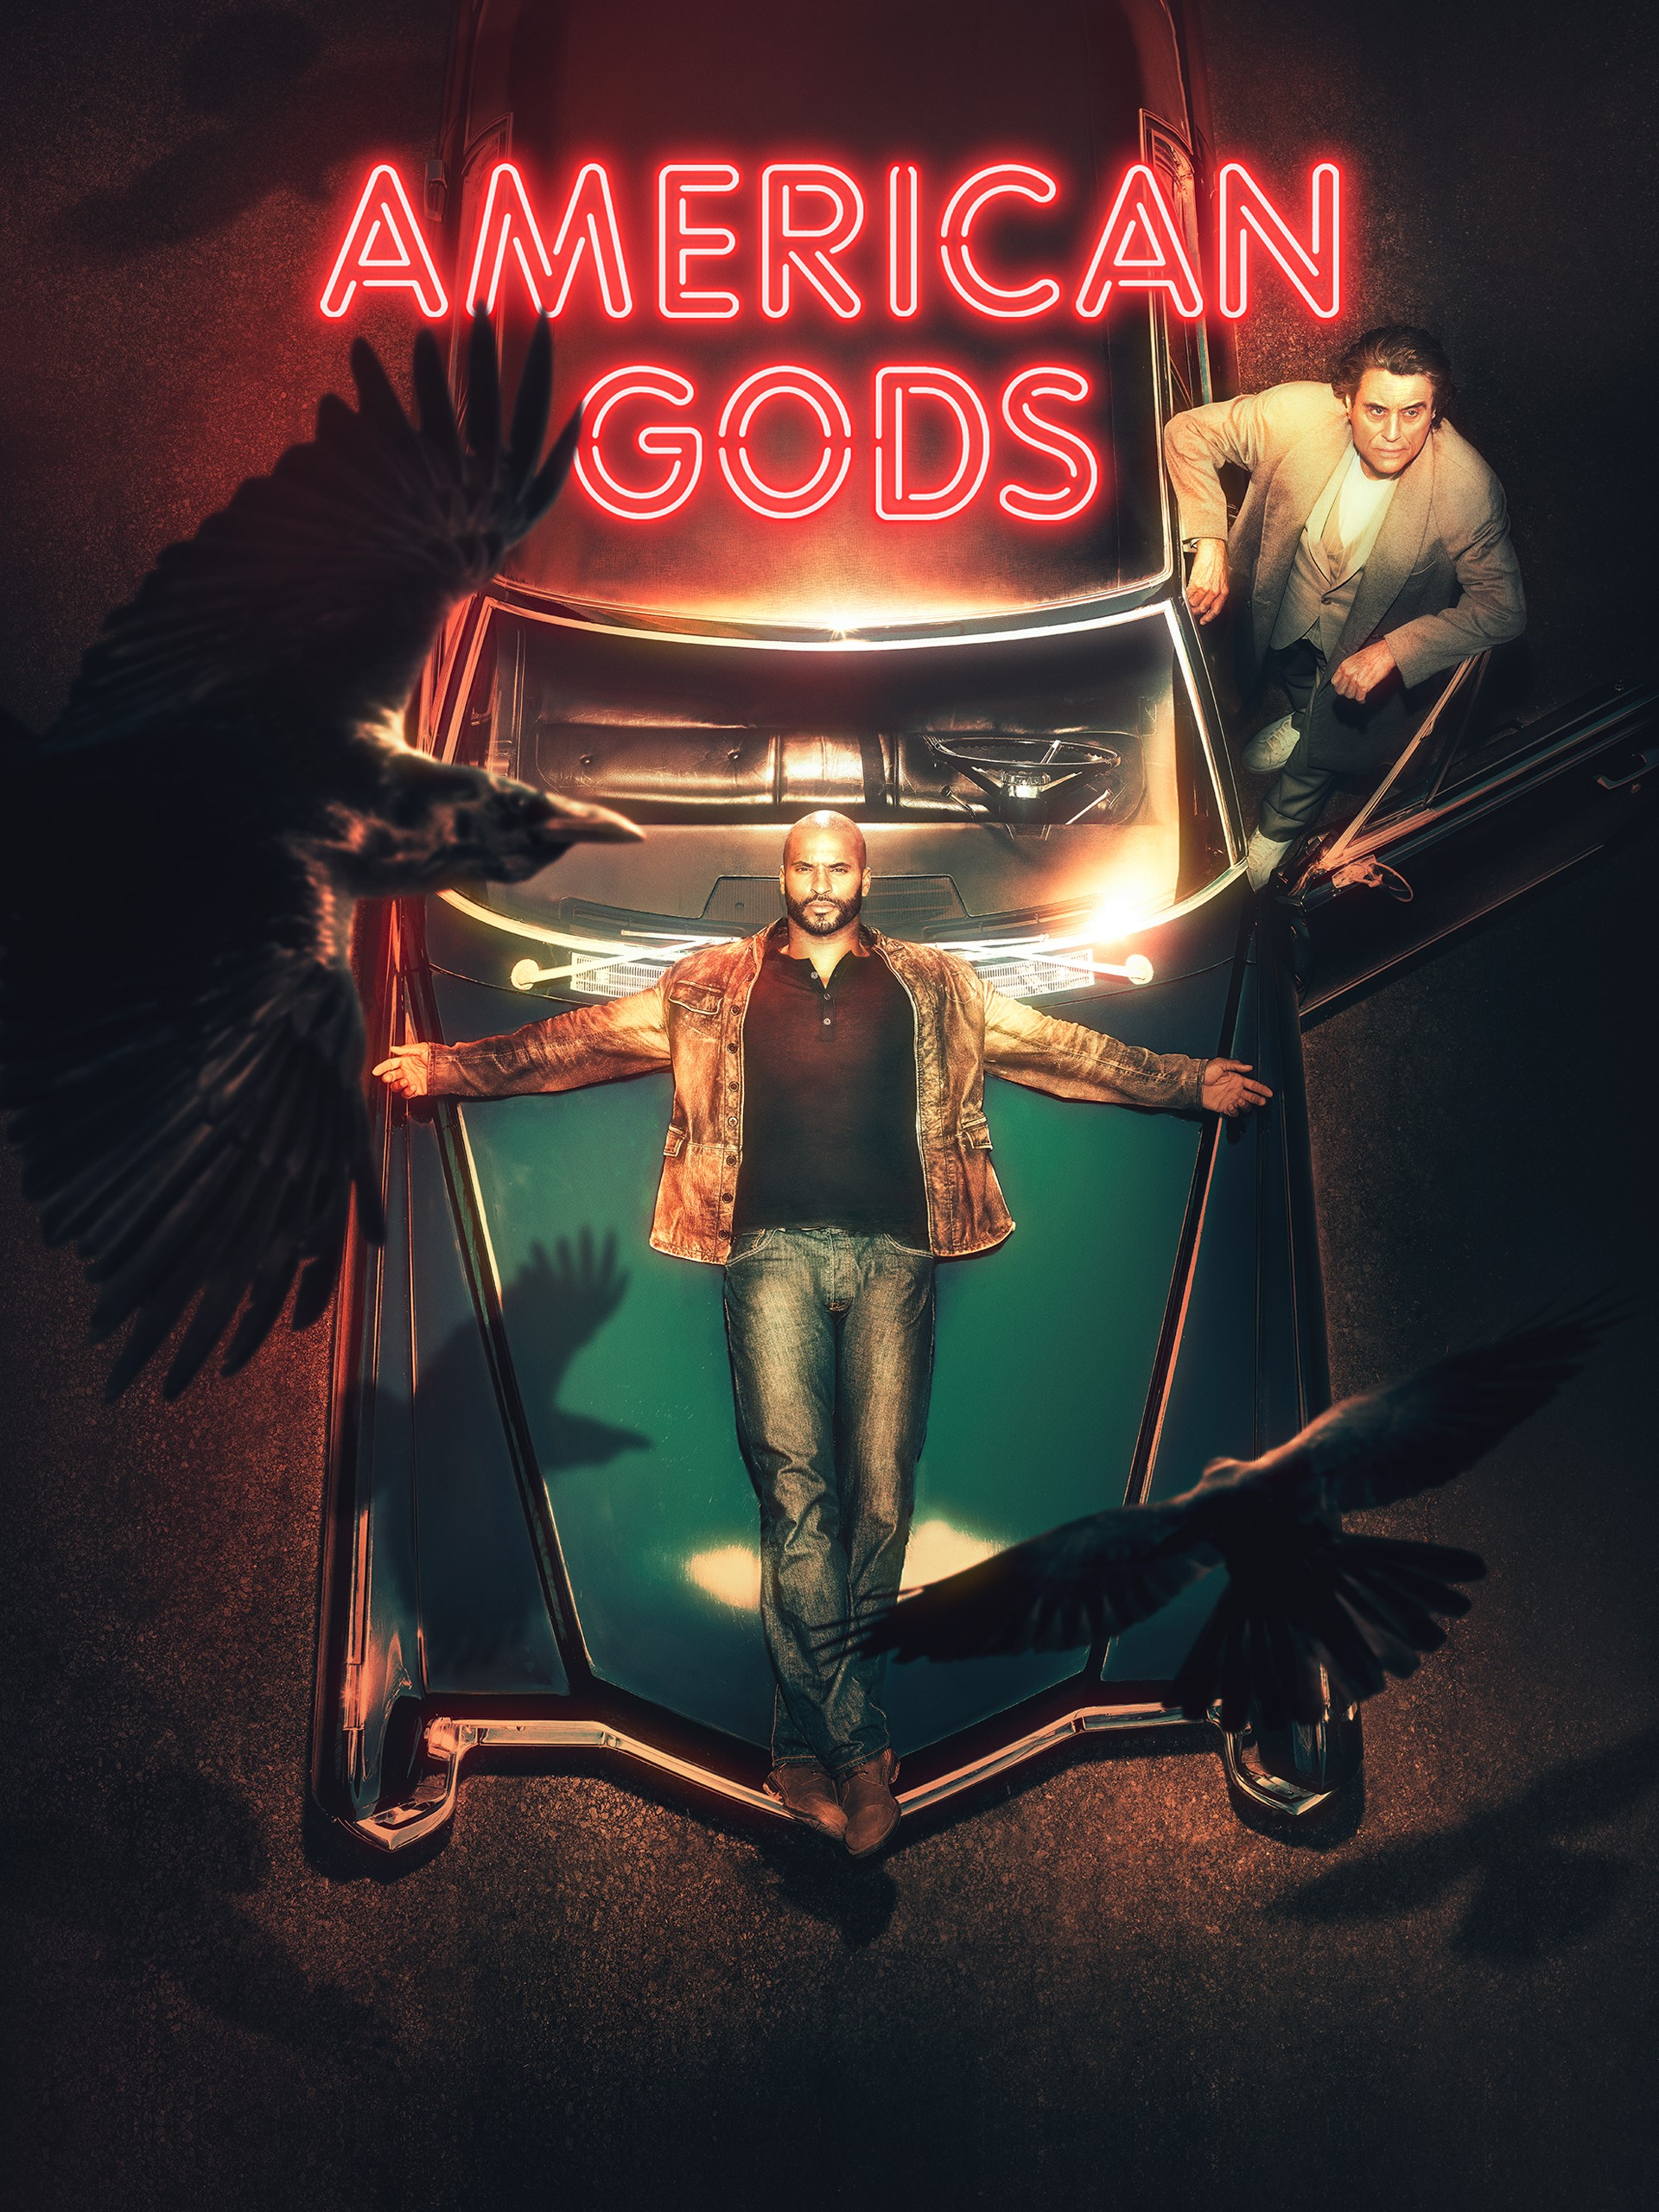 American Gods Segunda Temporada , HD Wallpaper & Backgrounds